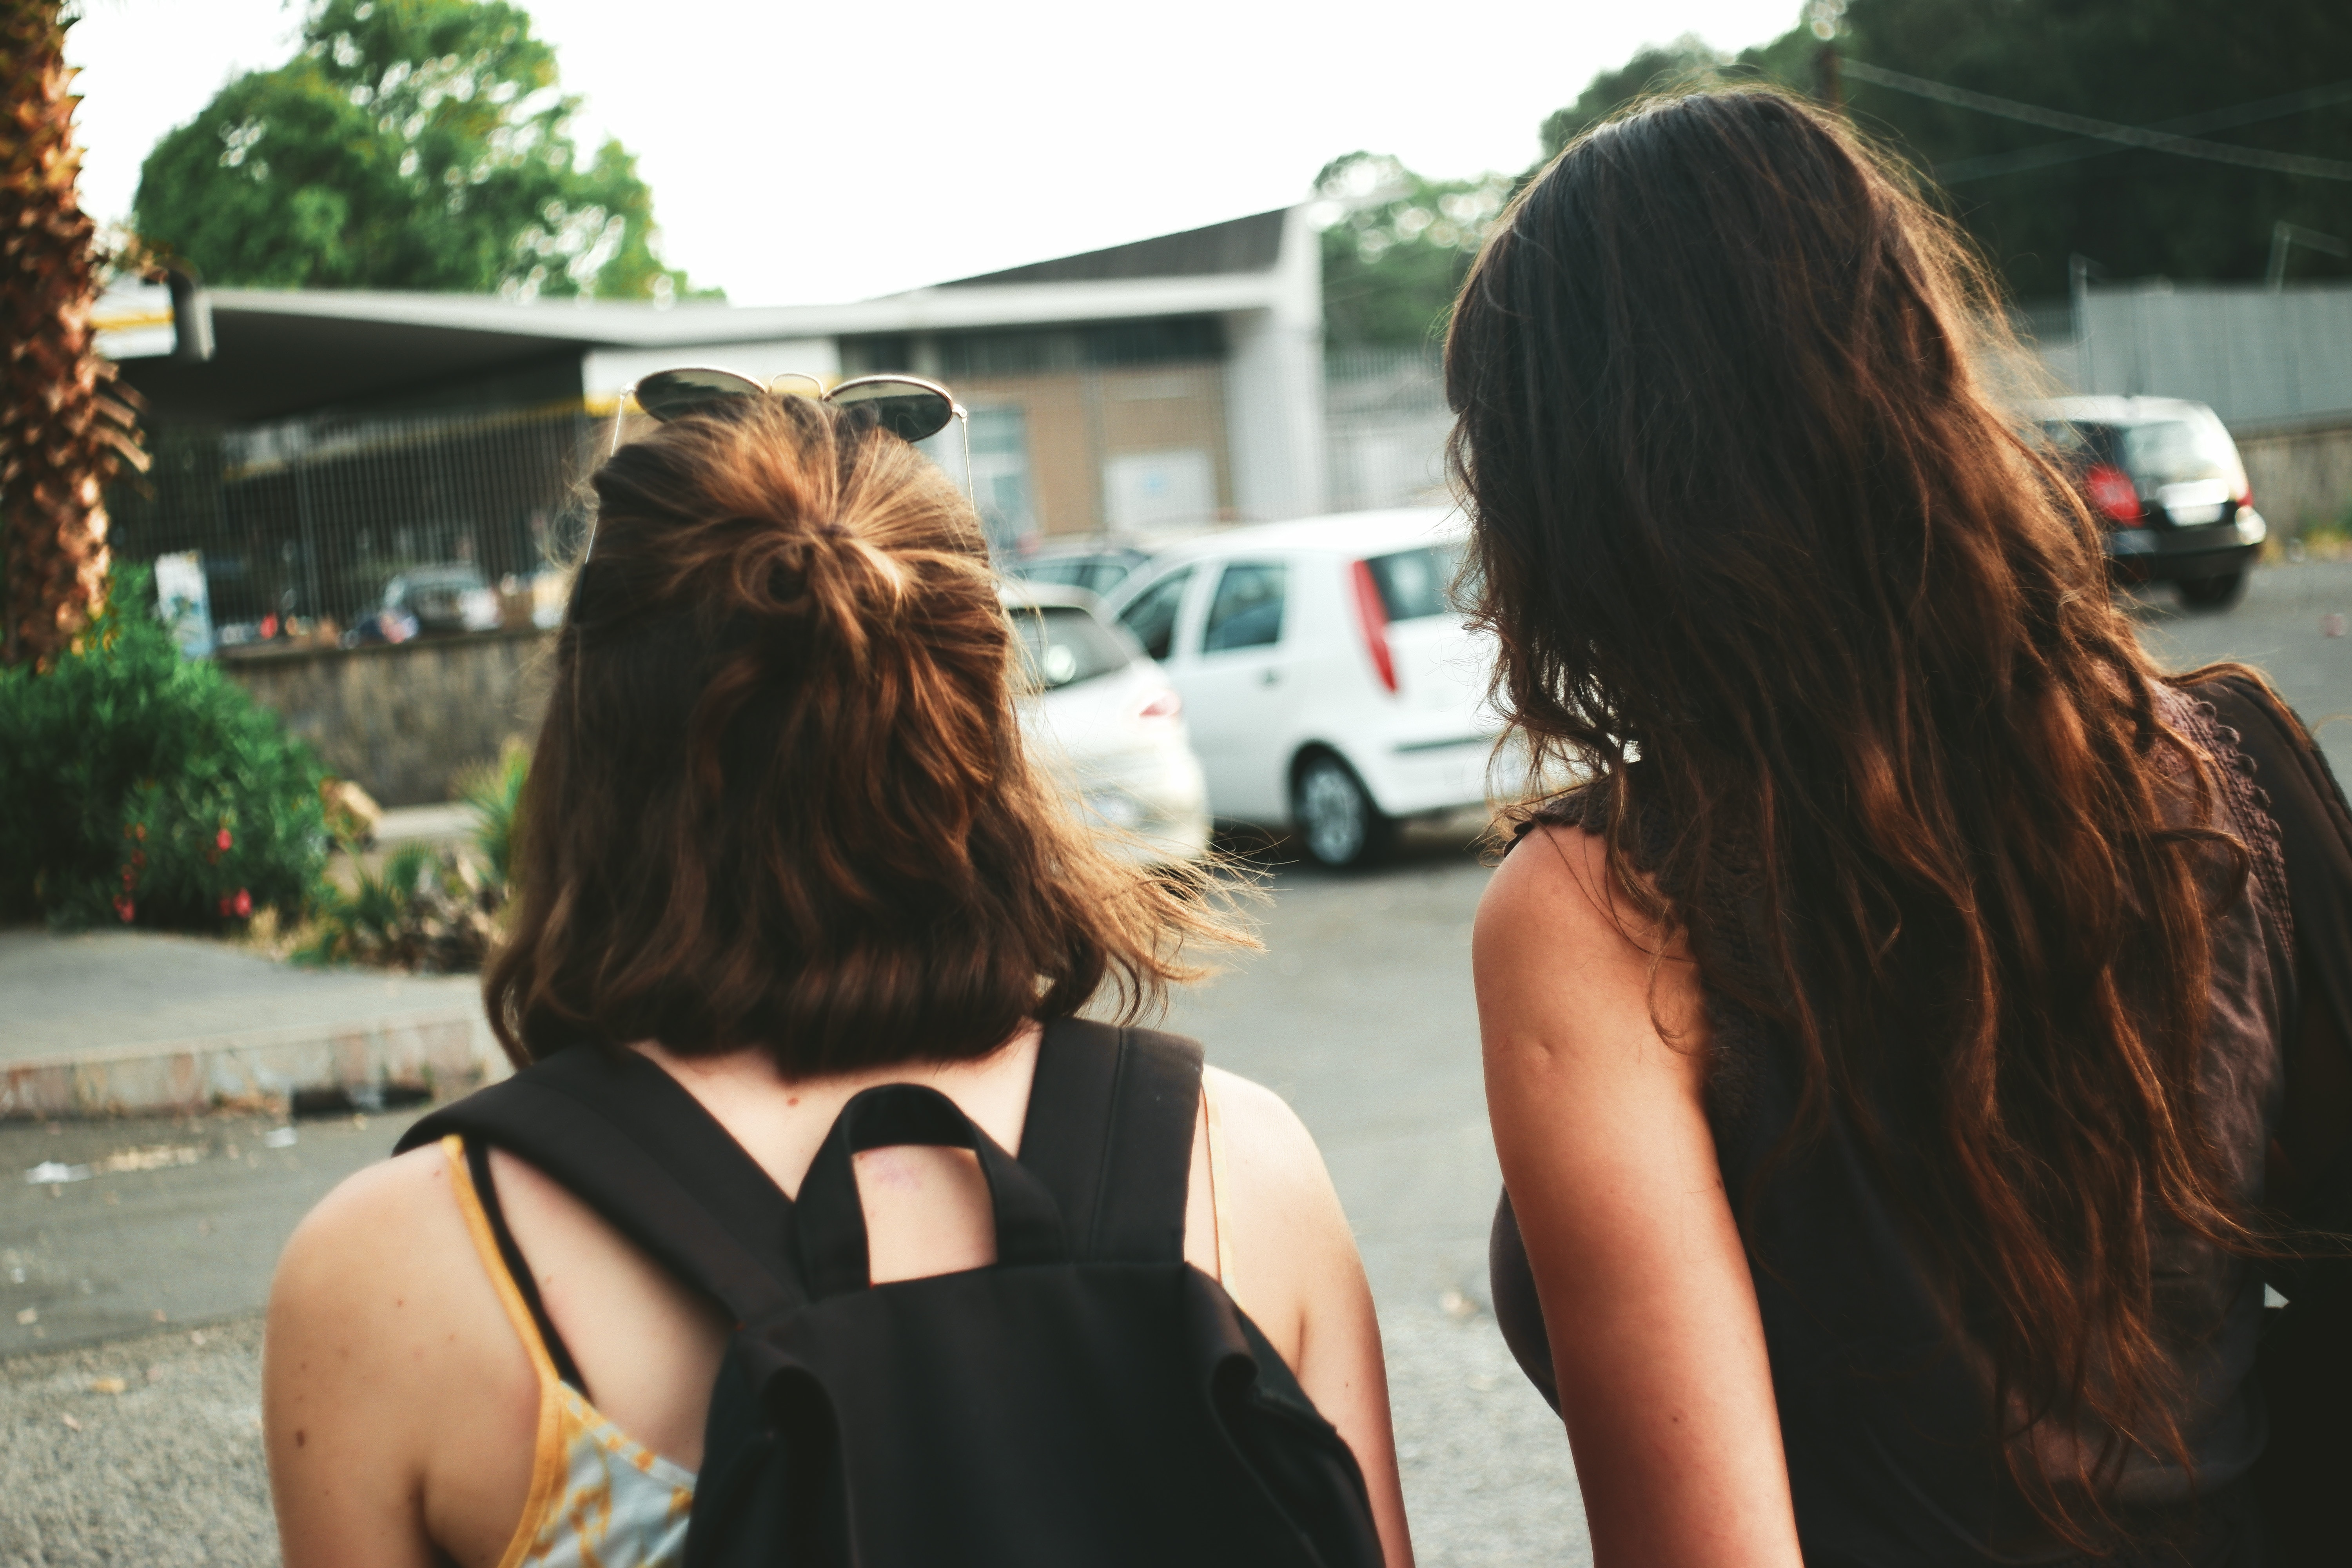 Two friends walking down the street together